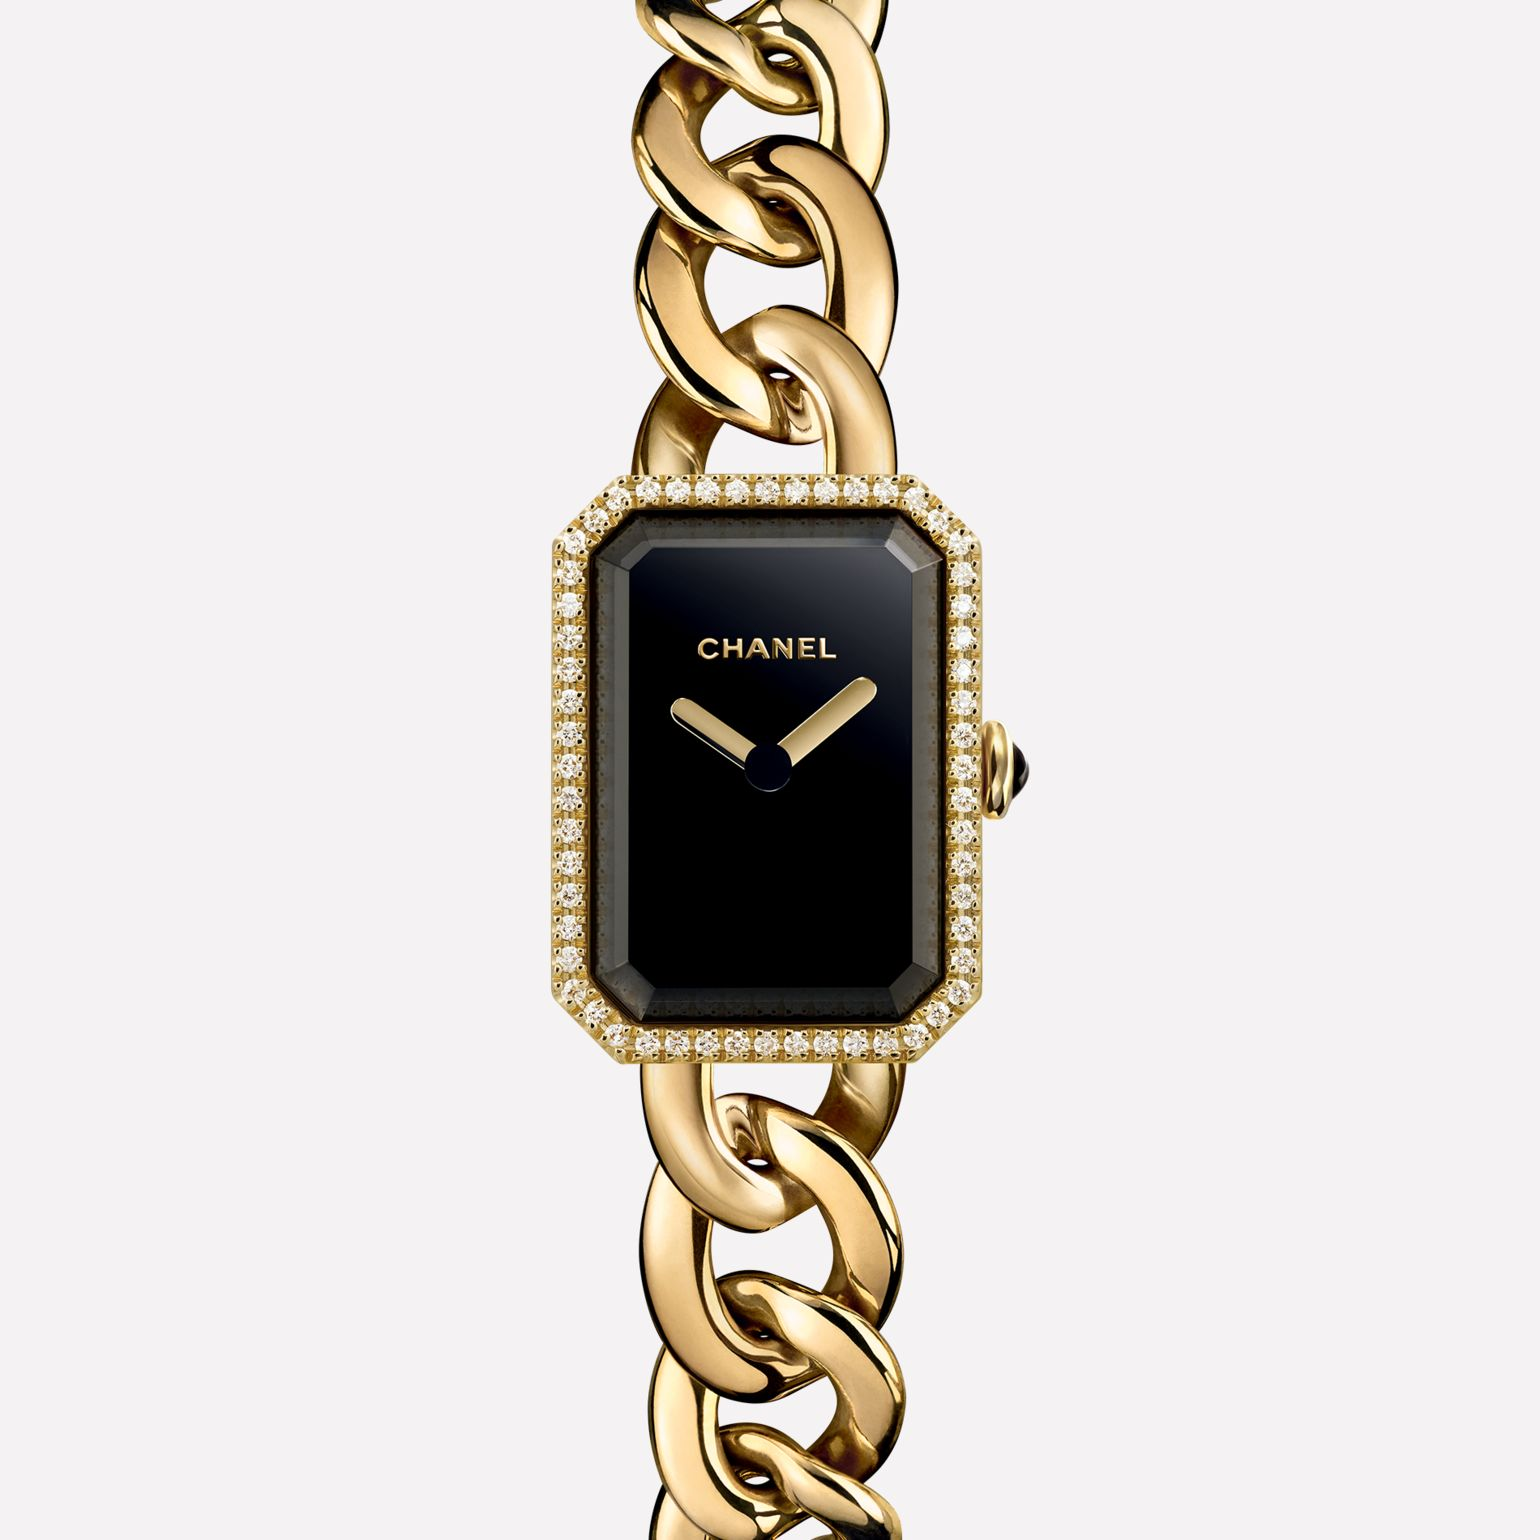 Première Chaîne Small version, yellow gold and diamonds, black dial